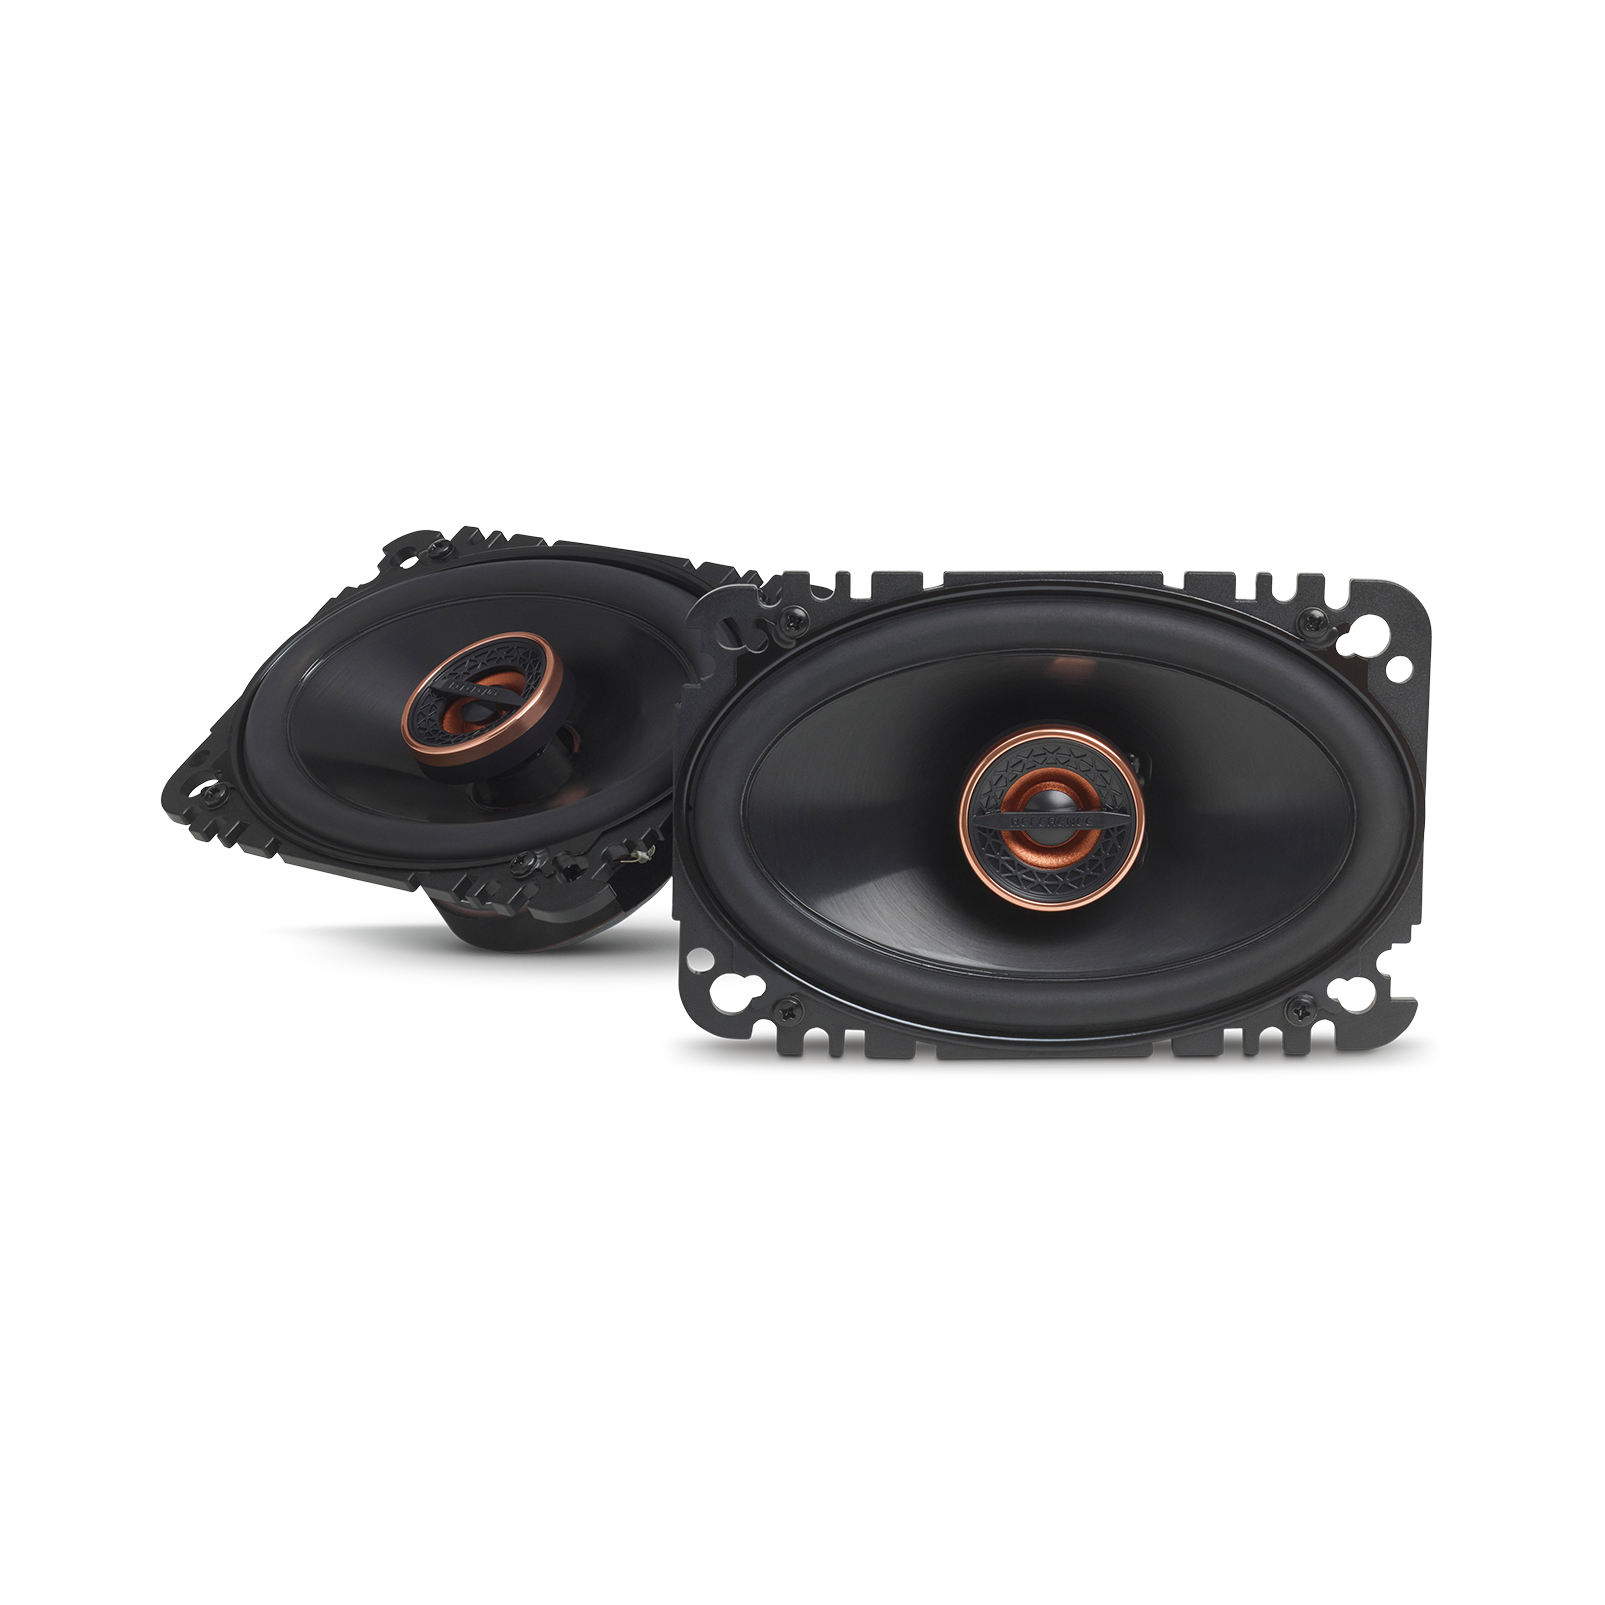 "Reference 6432cfx - Black - 4"" x 6"" (100mm x 152mm) coaxial car speaker, 135W - Hero"